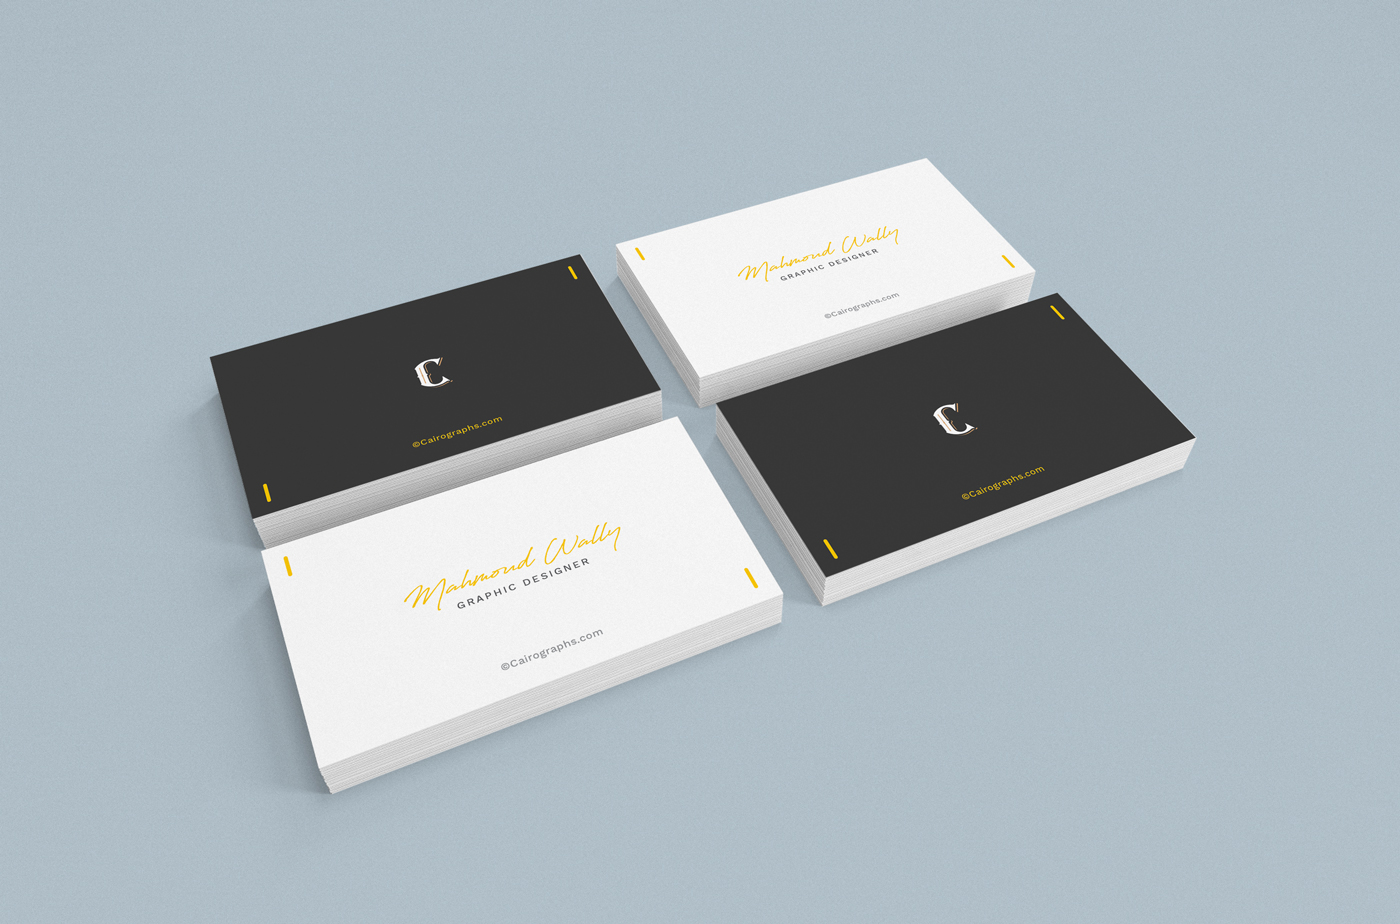 Stationery & Branding Mockups example image 5